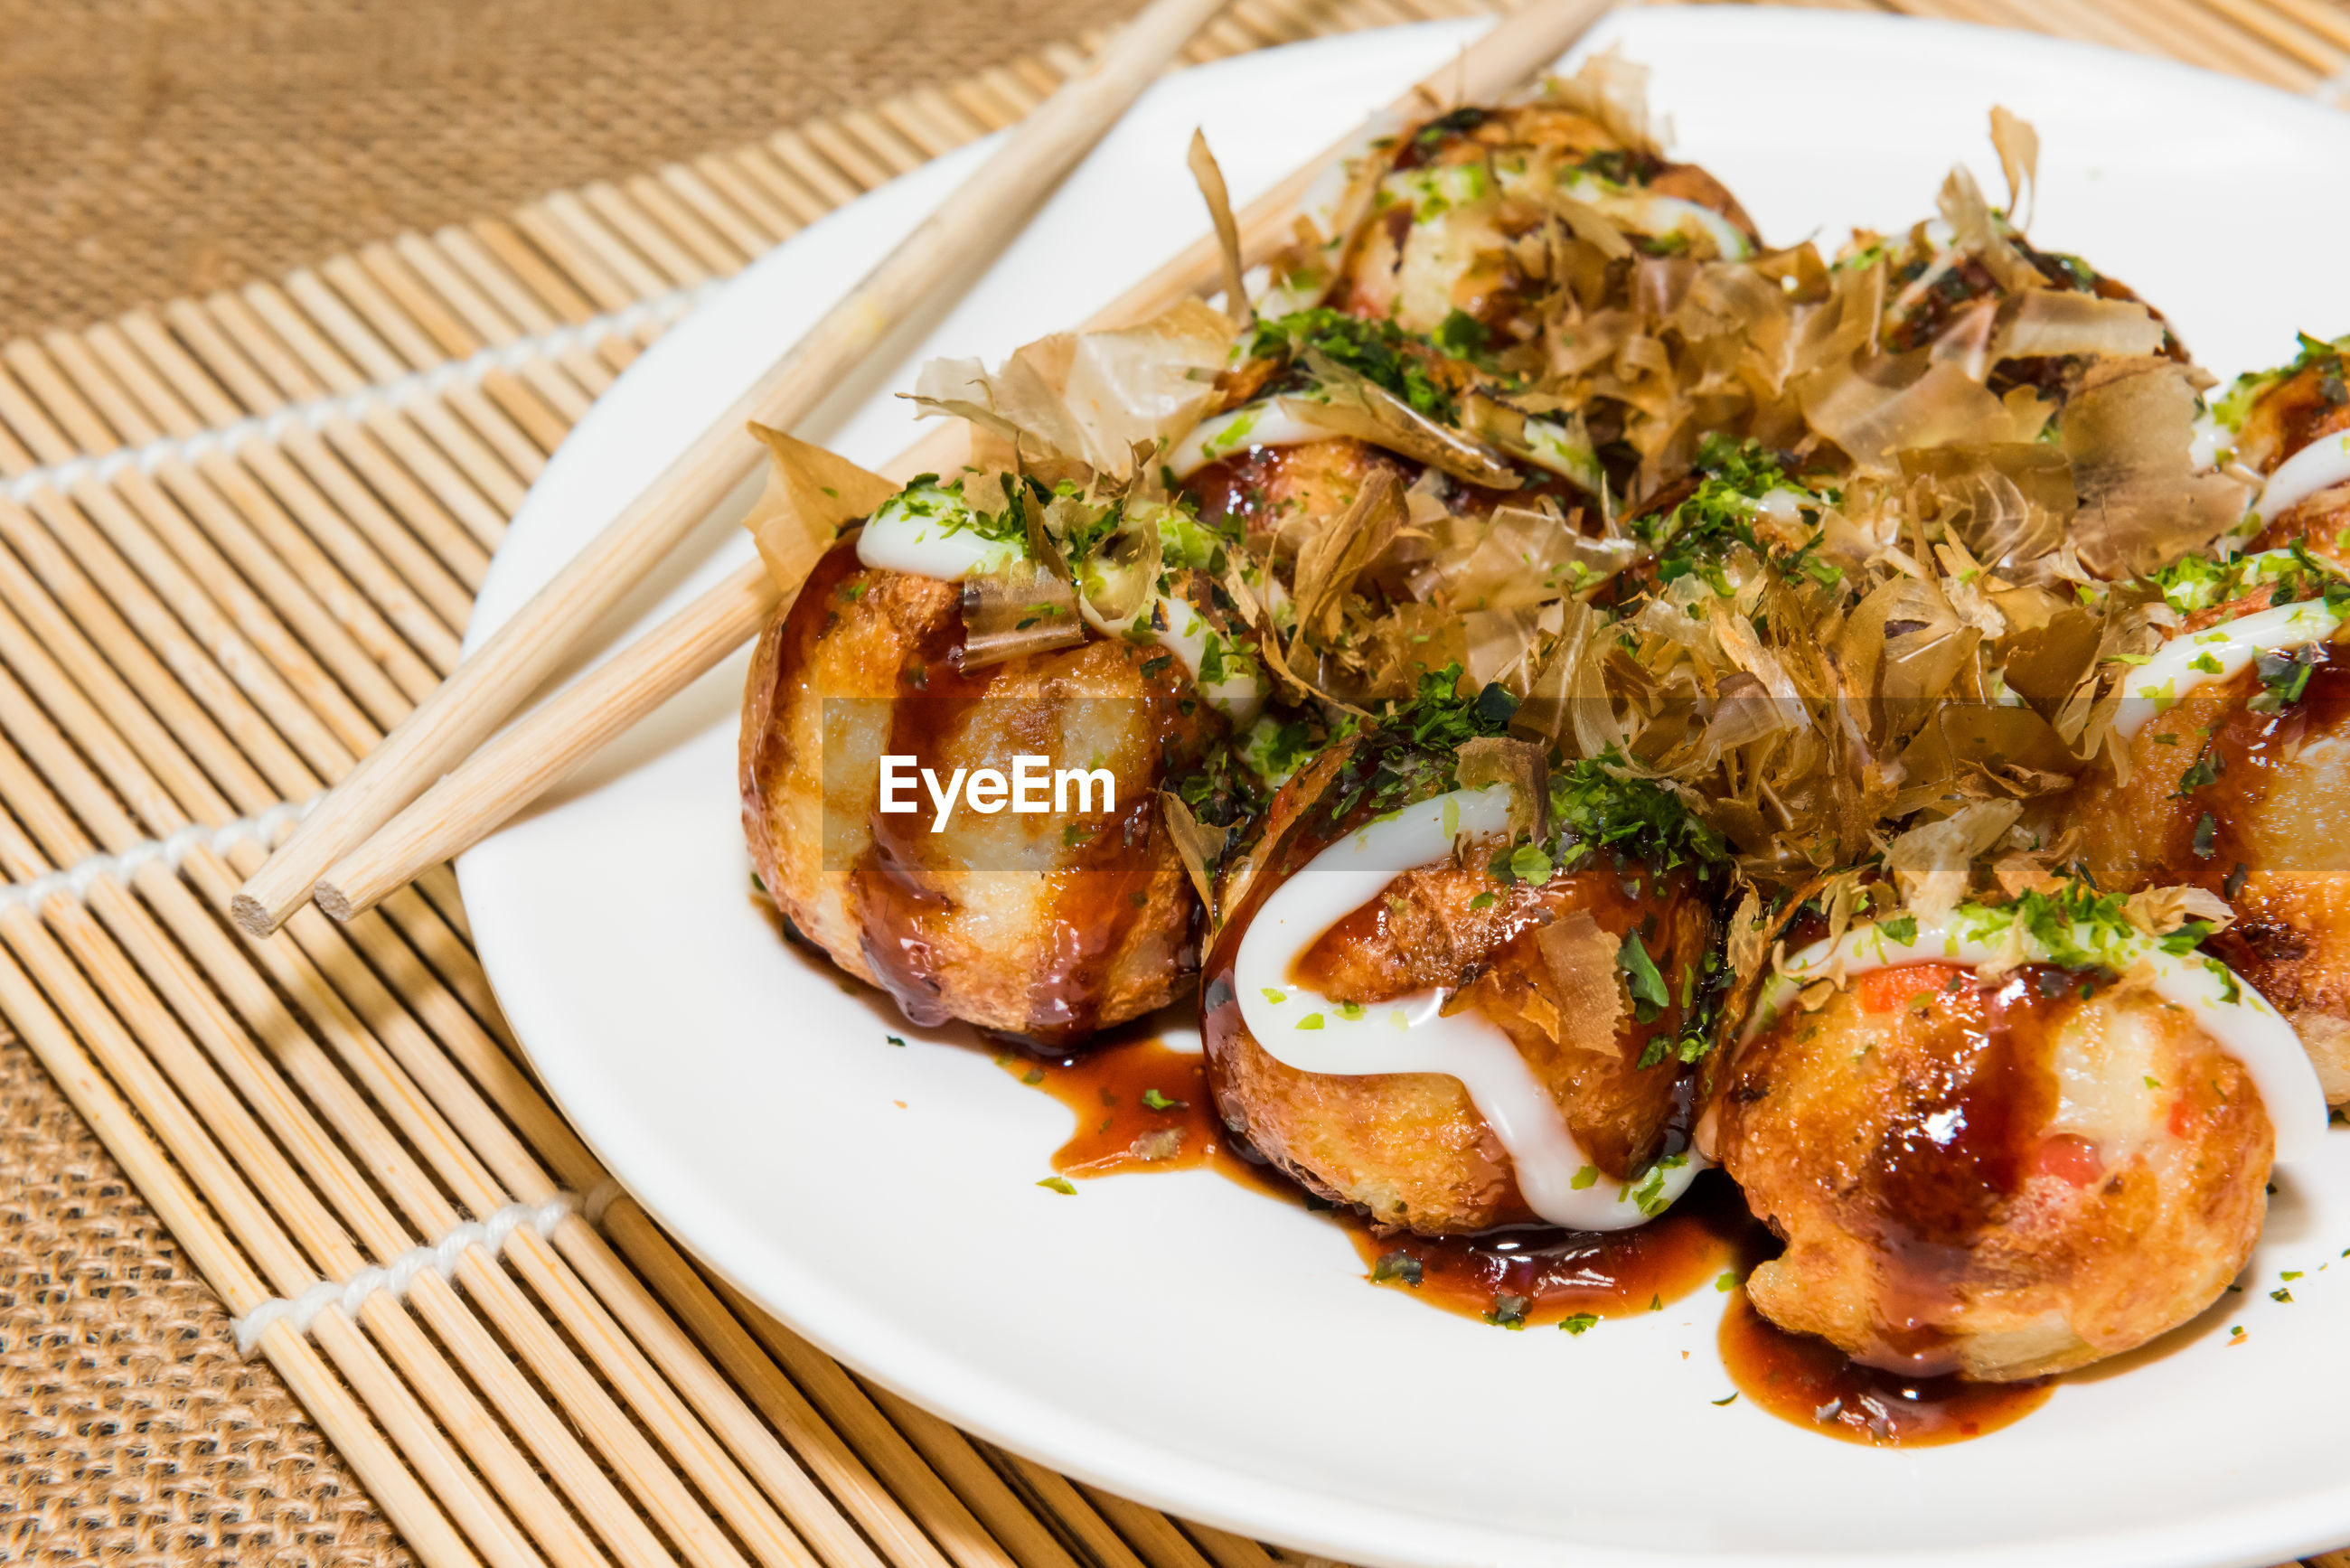 Homemade delicious takoyaki  or octopus ball, one of the famous japanese food